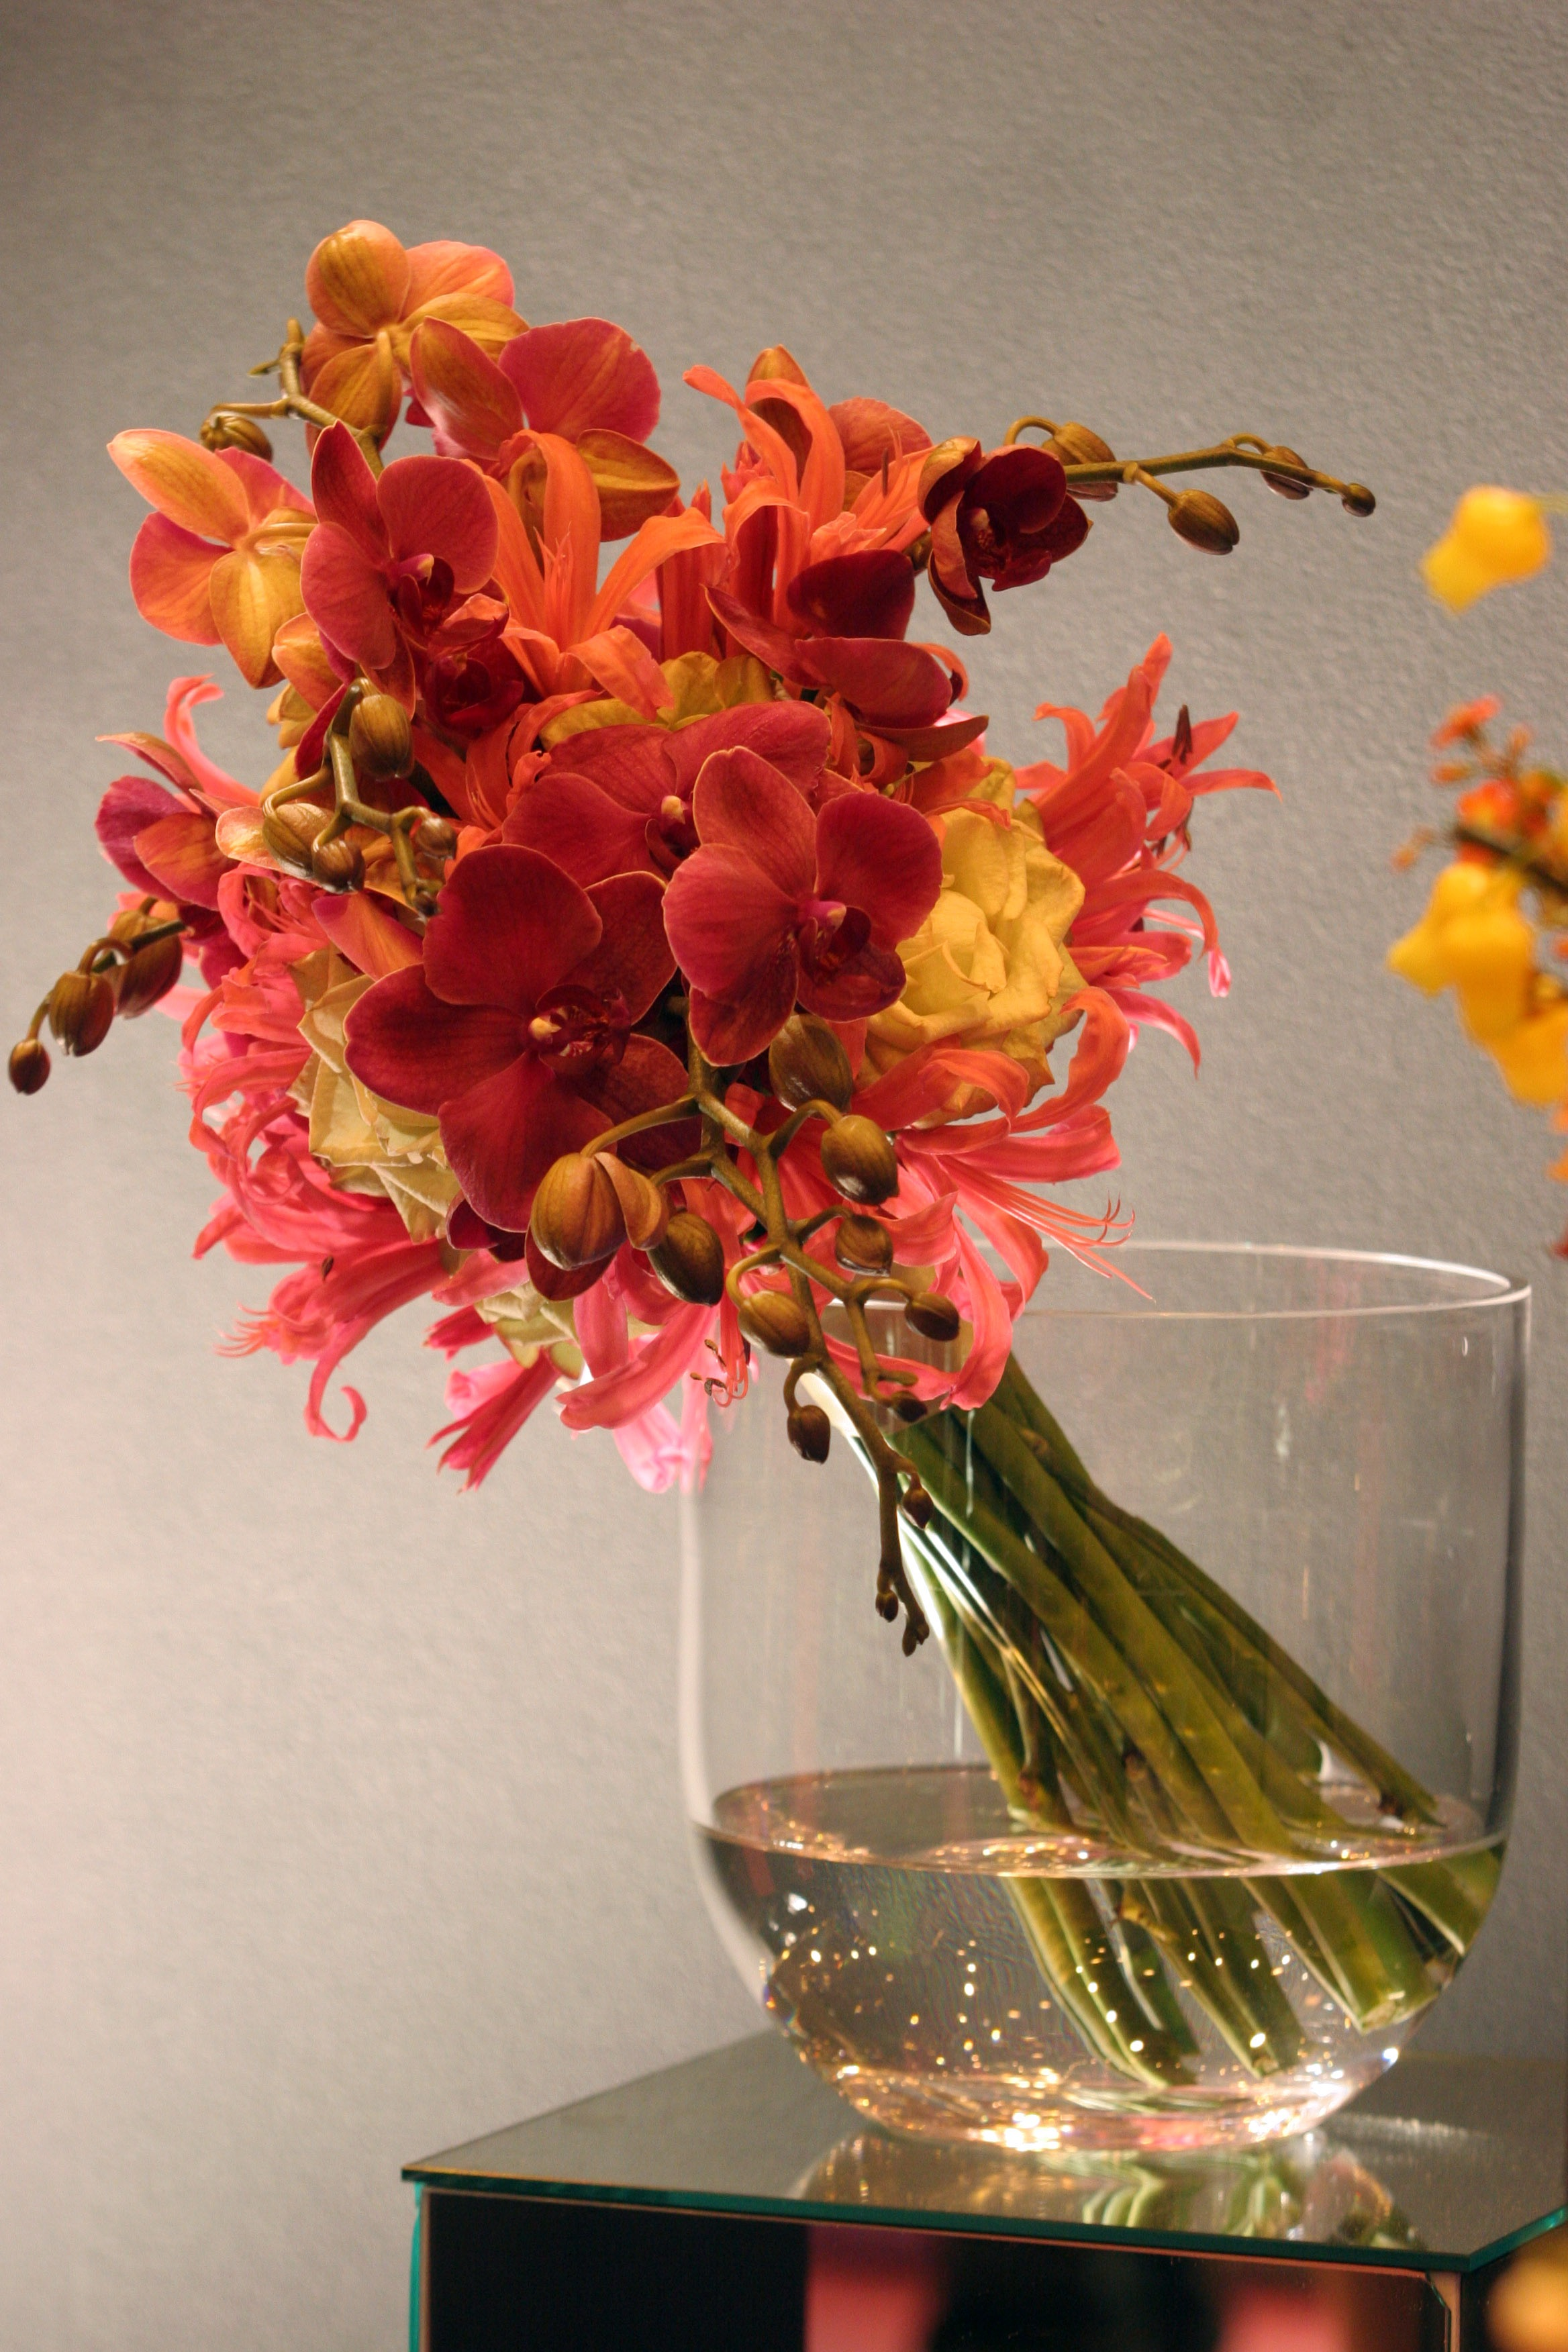 Orchid, nerine and rose bouquet.jpg